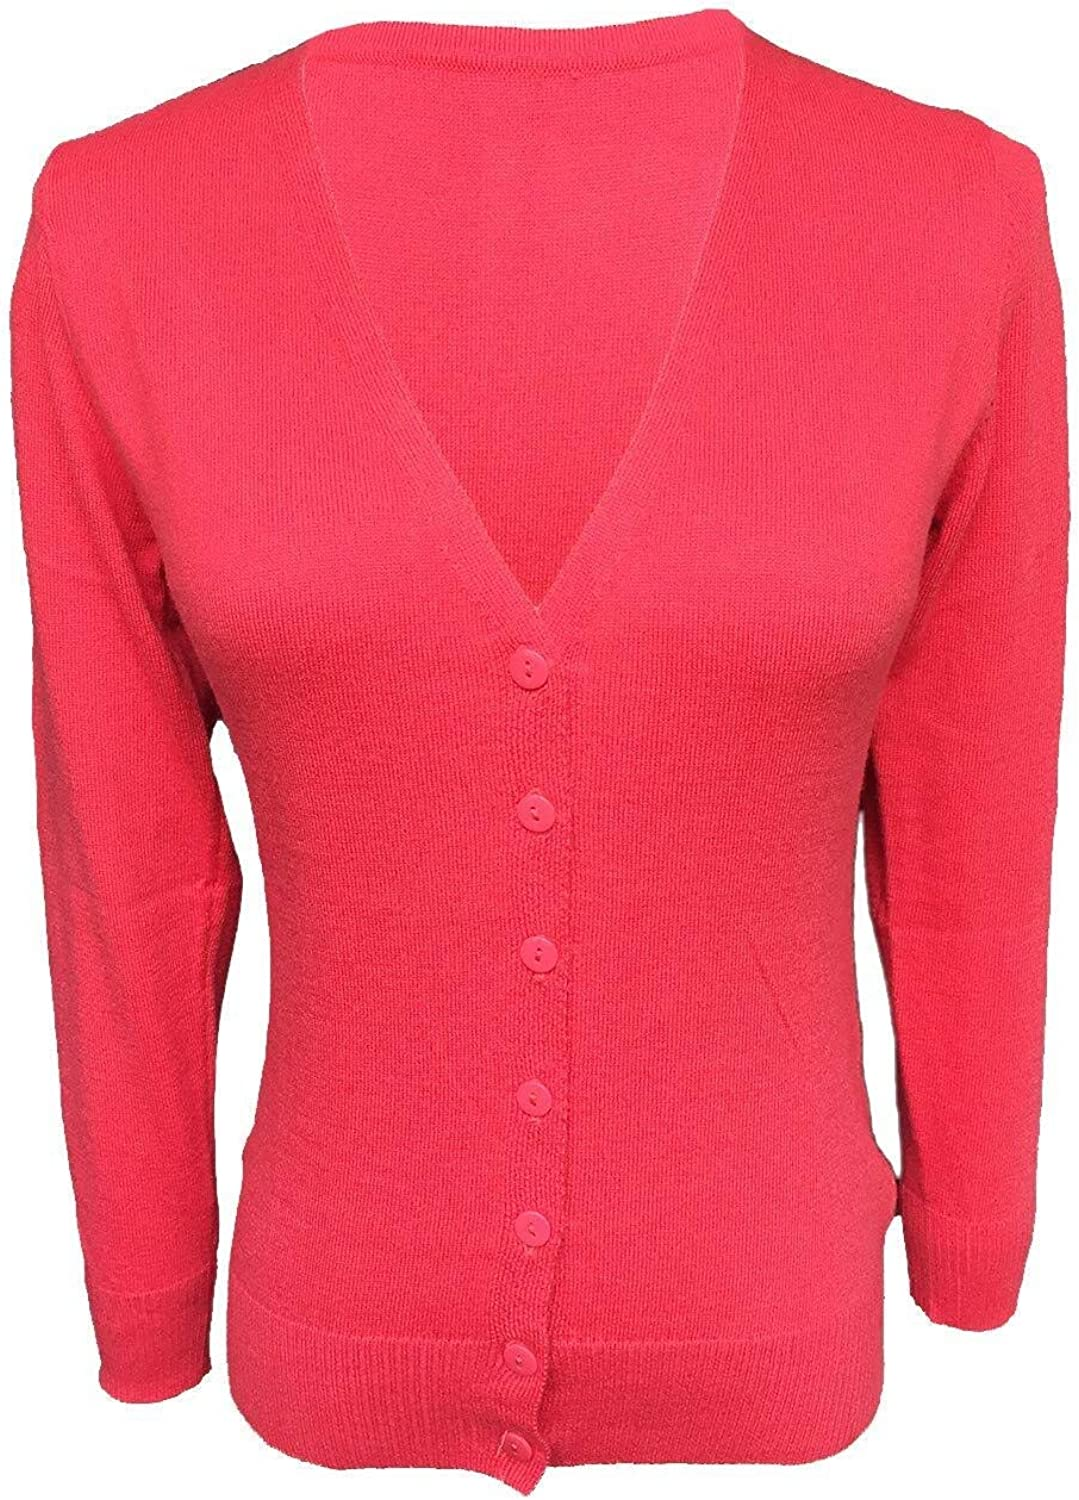 Ladies Basic Cardigan Wool Blended Fine Buttoned Uni Sizes S Casual Fashionable Completi Festive Retro Tops